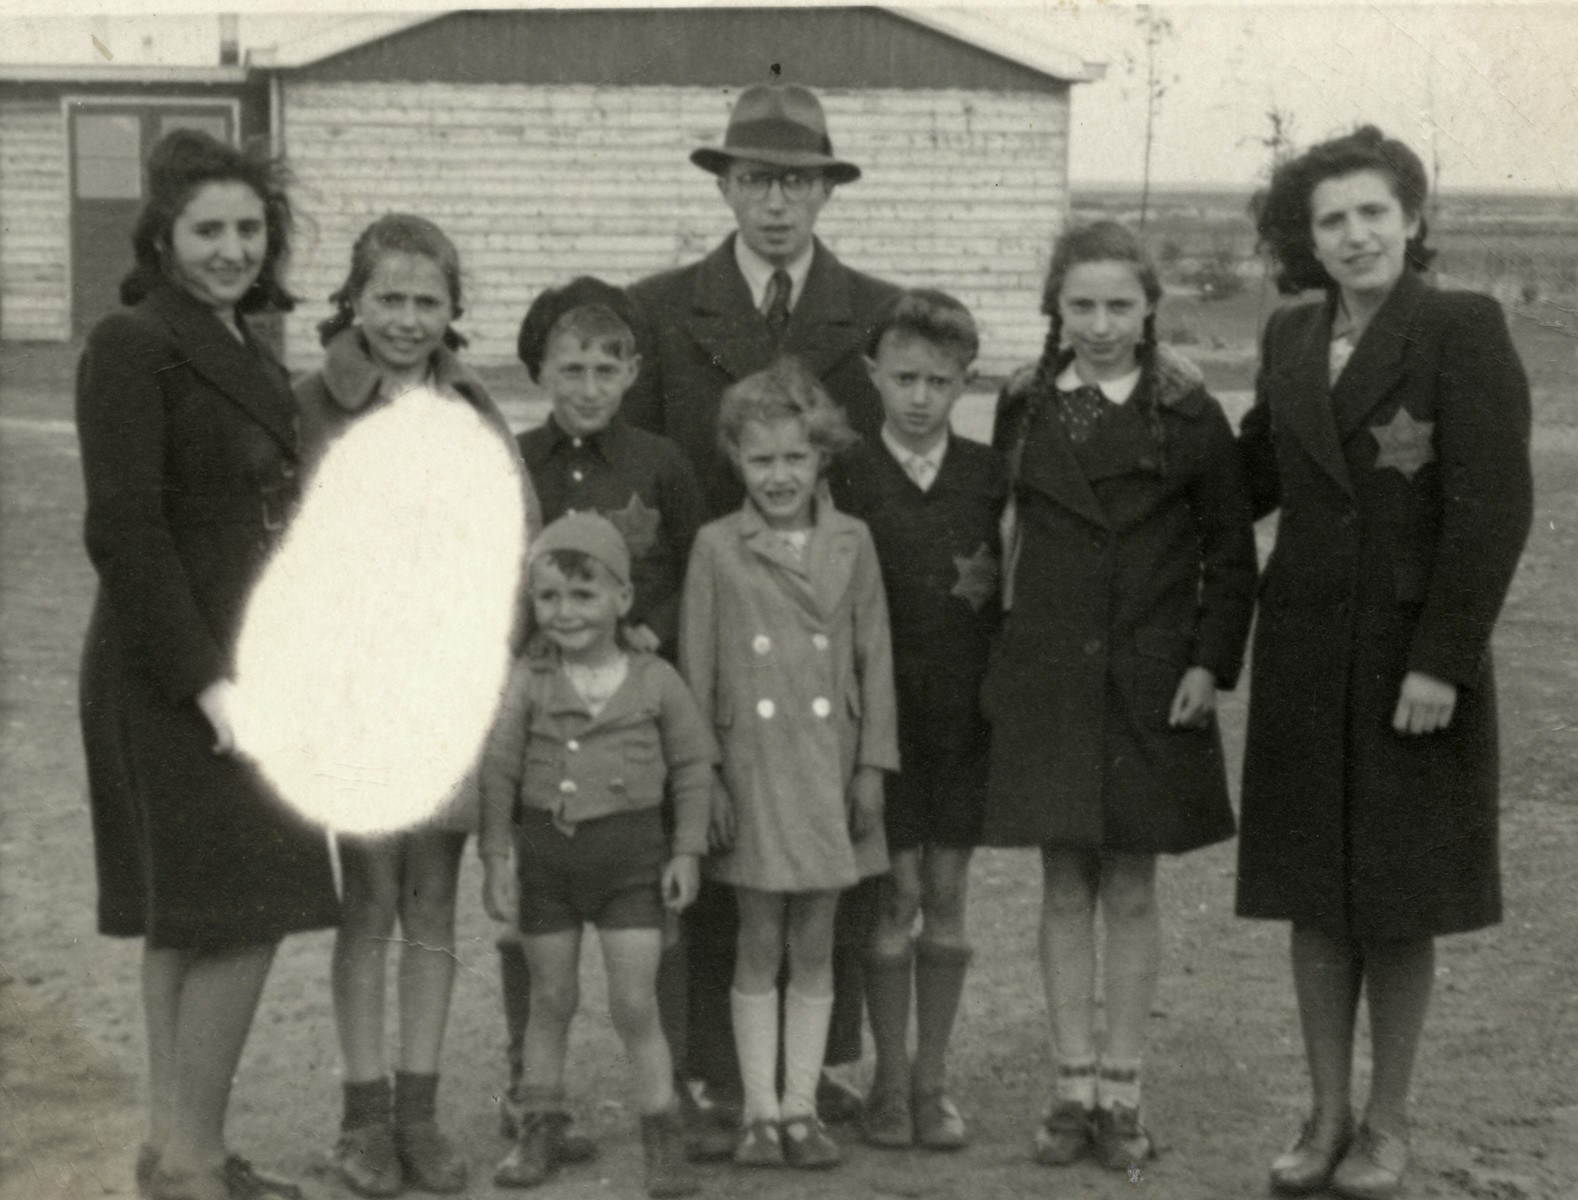 Portrait of the Birnbaum family in the Westerbork transit camp wearing Jewish stars on the street where they lived.  From left to right are an unidentified woman, Regina, Yaakov, Shmuel, Yehoshua, Suzy, Tzvi, Sonni and Regina Ohringer (a first  cousin who perished in Sobibor in 1943 at the age of 16).